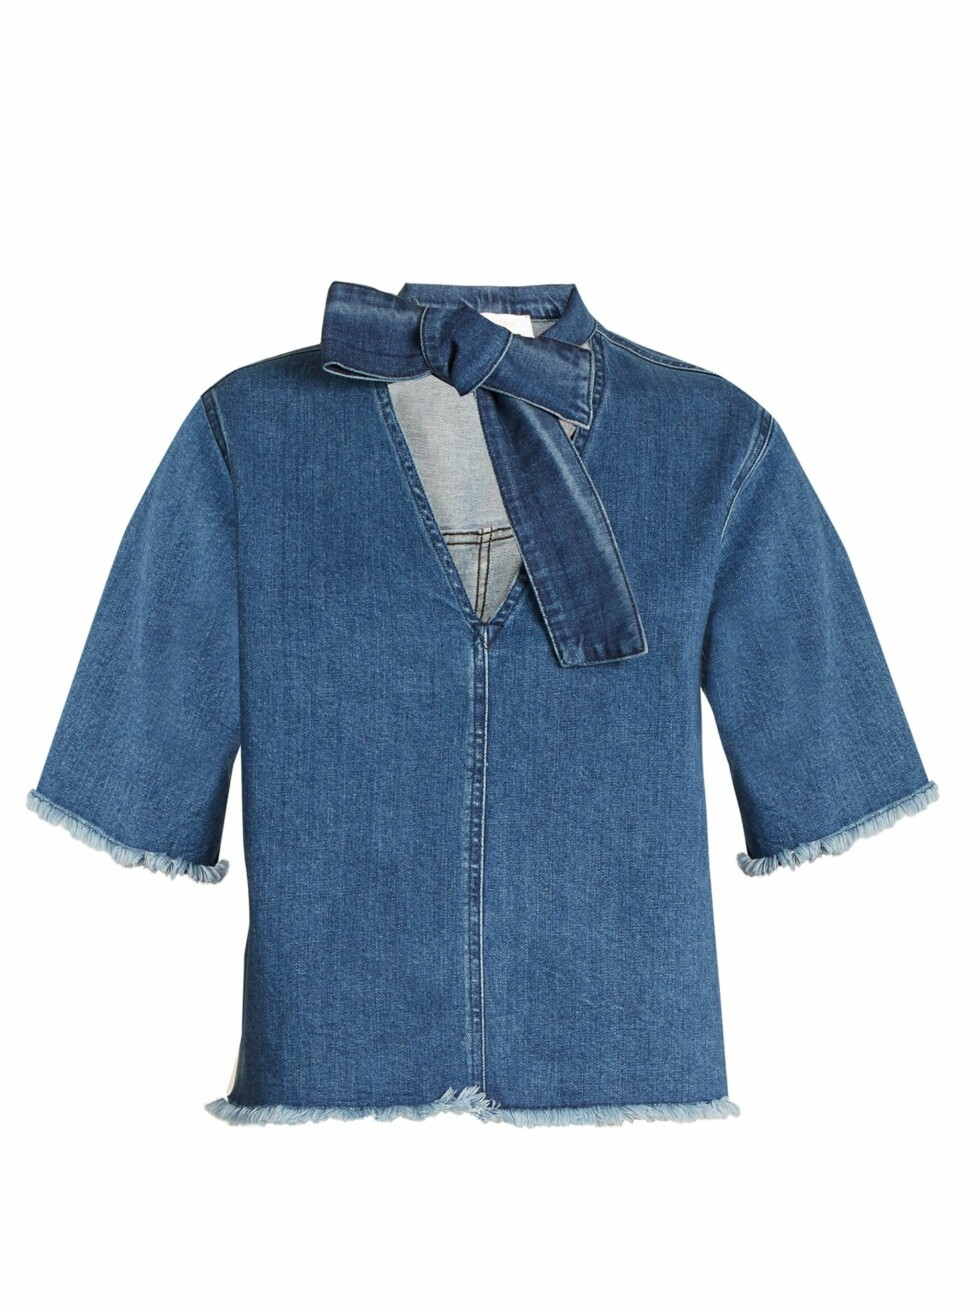 Topp fra See by Chloe |720,-| https://www.matchesfashion.com/intl/products/See-By-Chlo%C3%A9-Tie-neck-frayed-edge-denim-top-1152950